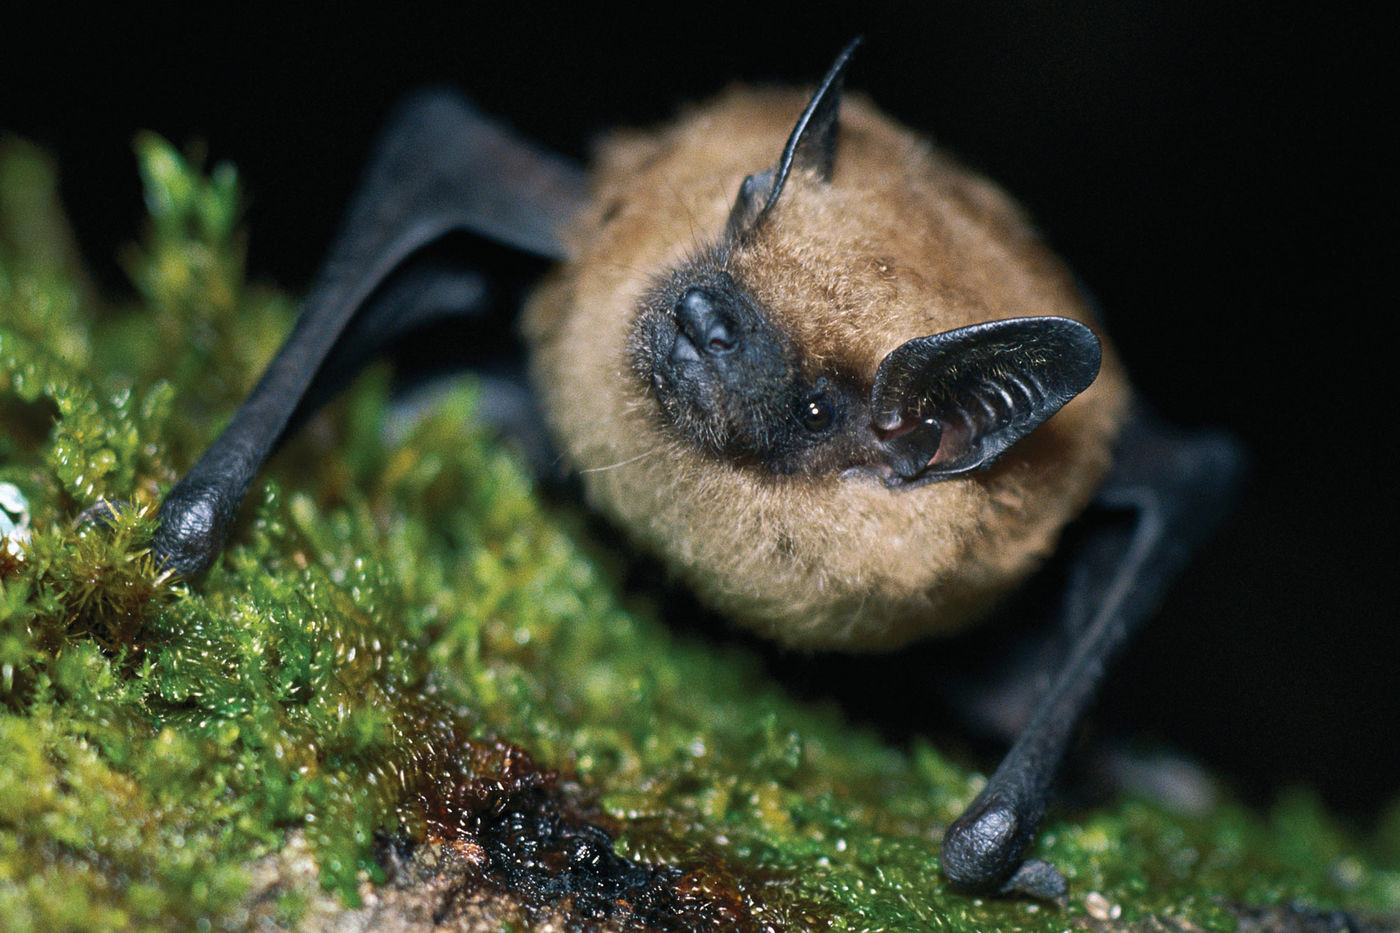 Close-up of a big brown bat perched on a mossy surface. Its fur is light brown and its face, ears, and wings are black.